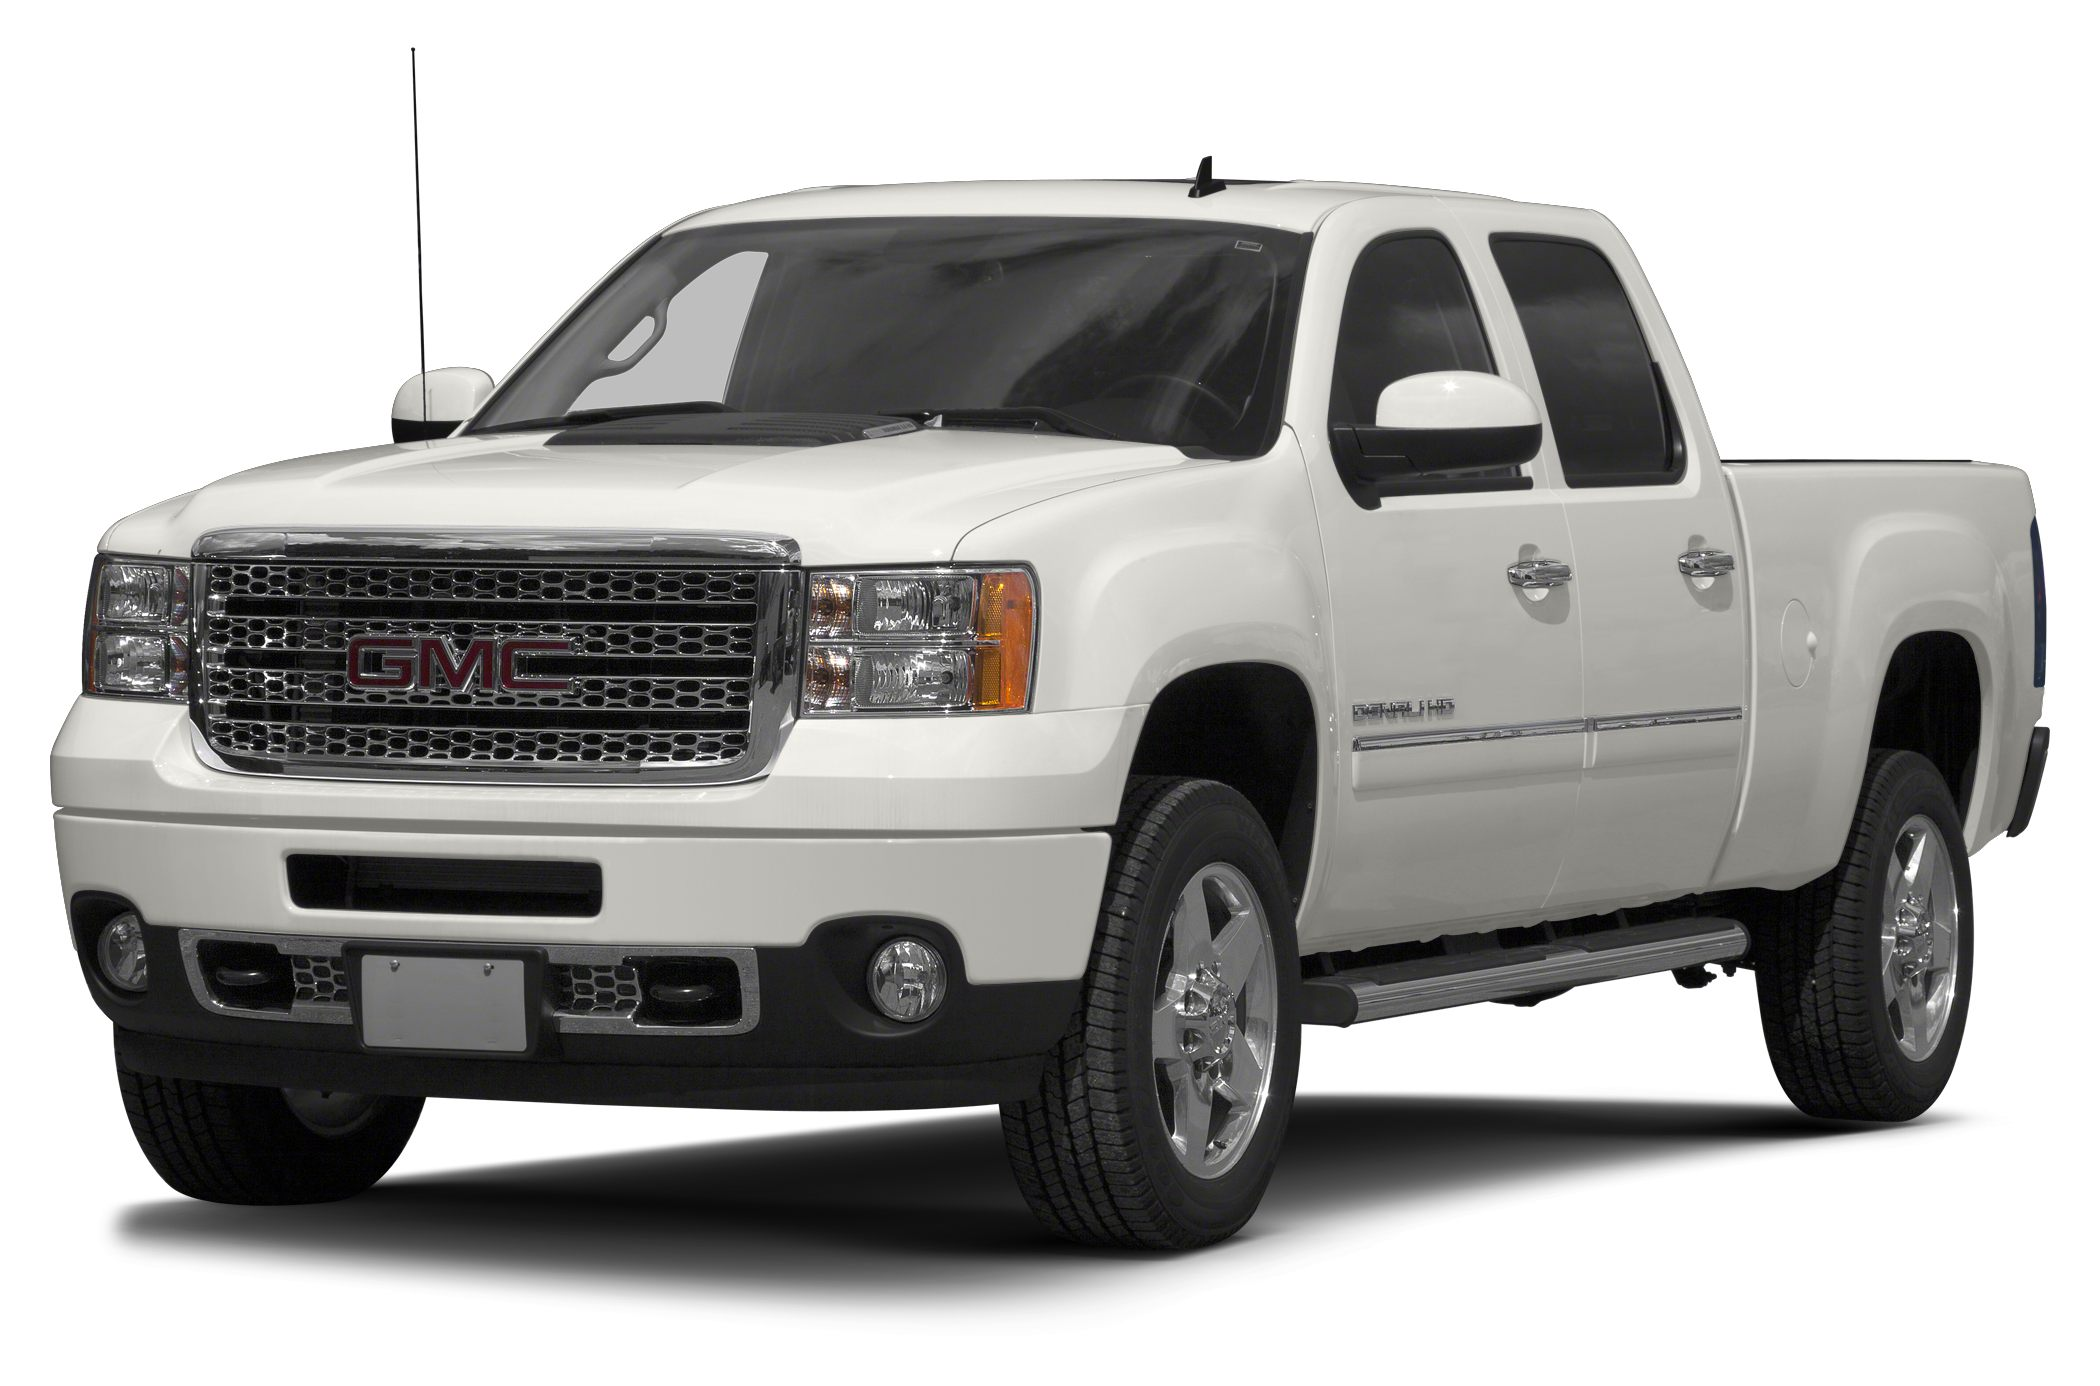 2013 GMC Sierra 3500 Denali Crew Cab Pickup for sale in Rhinelander for $47,980 with 26,257 miles.